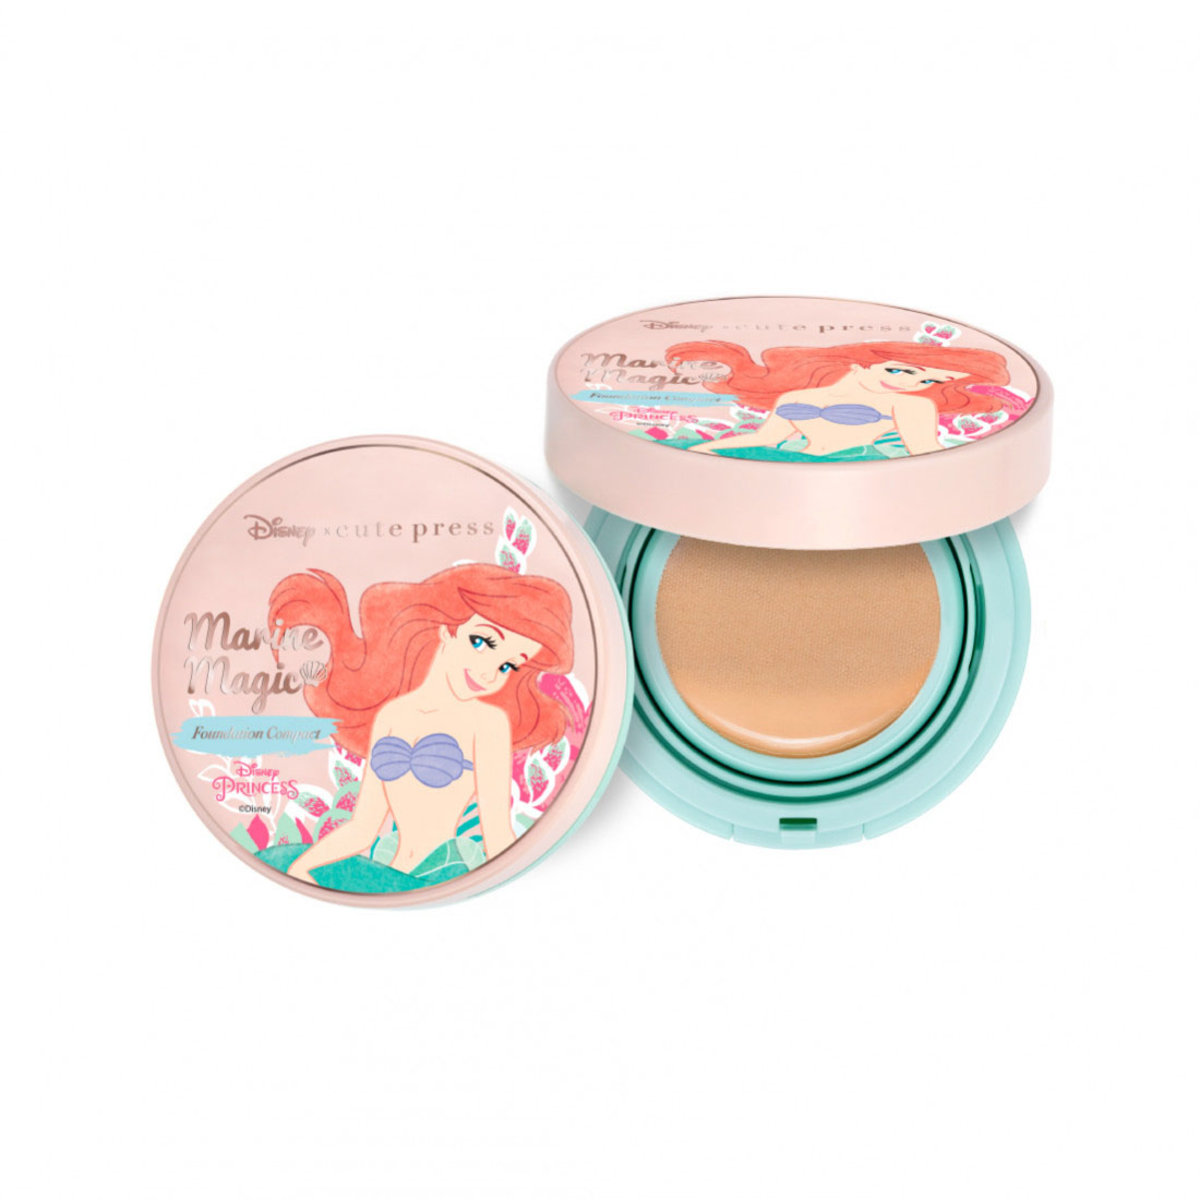 The little Mermaid marine Foundation Compact T2 Natural Beige